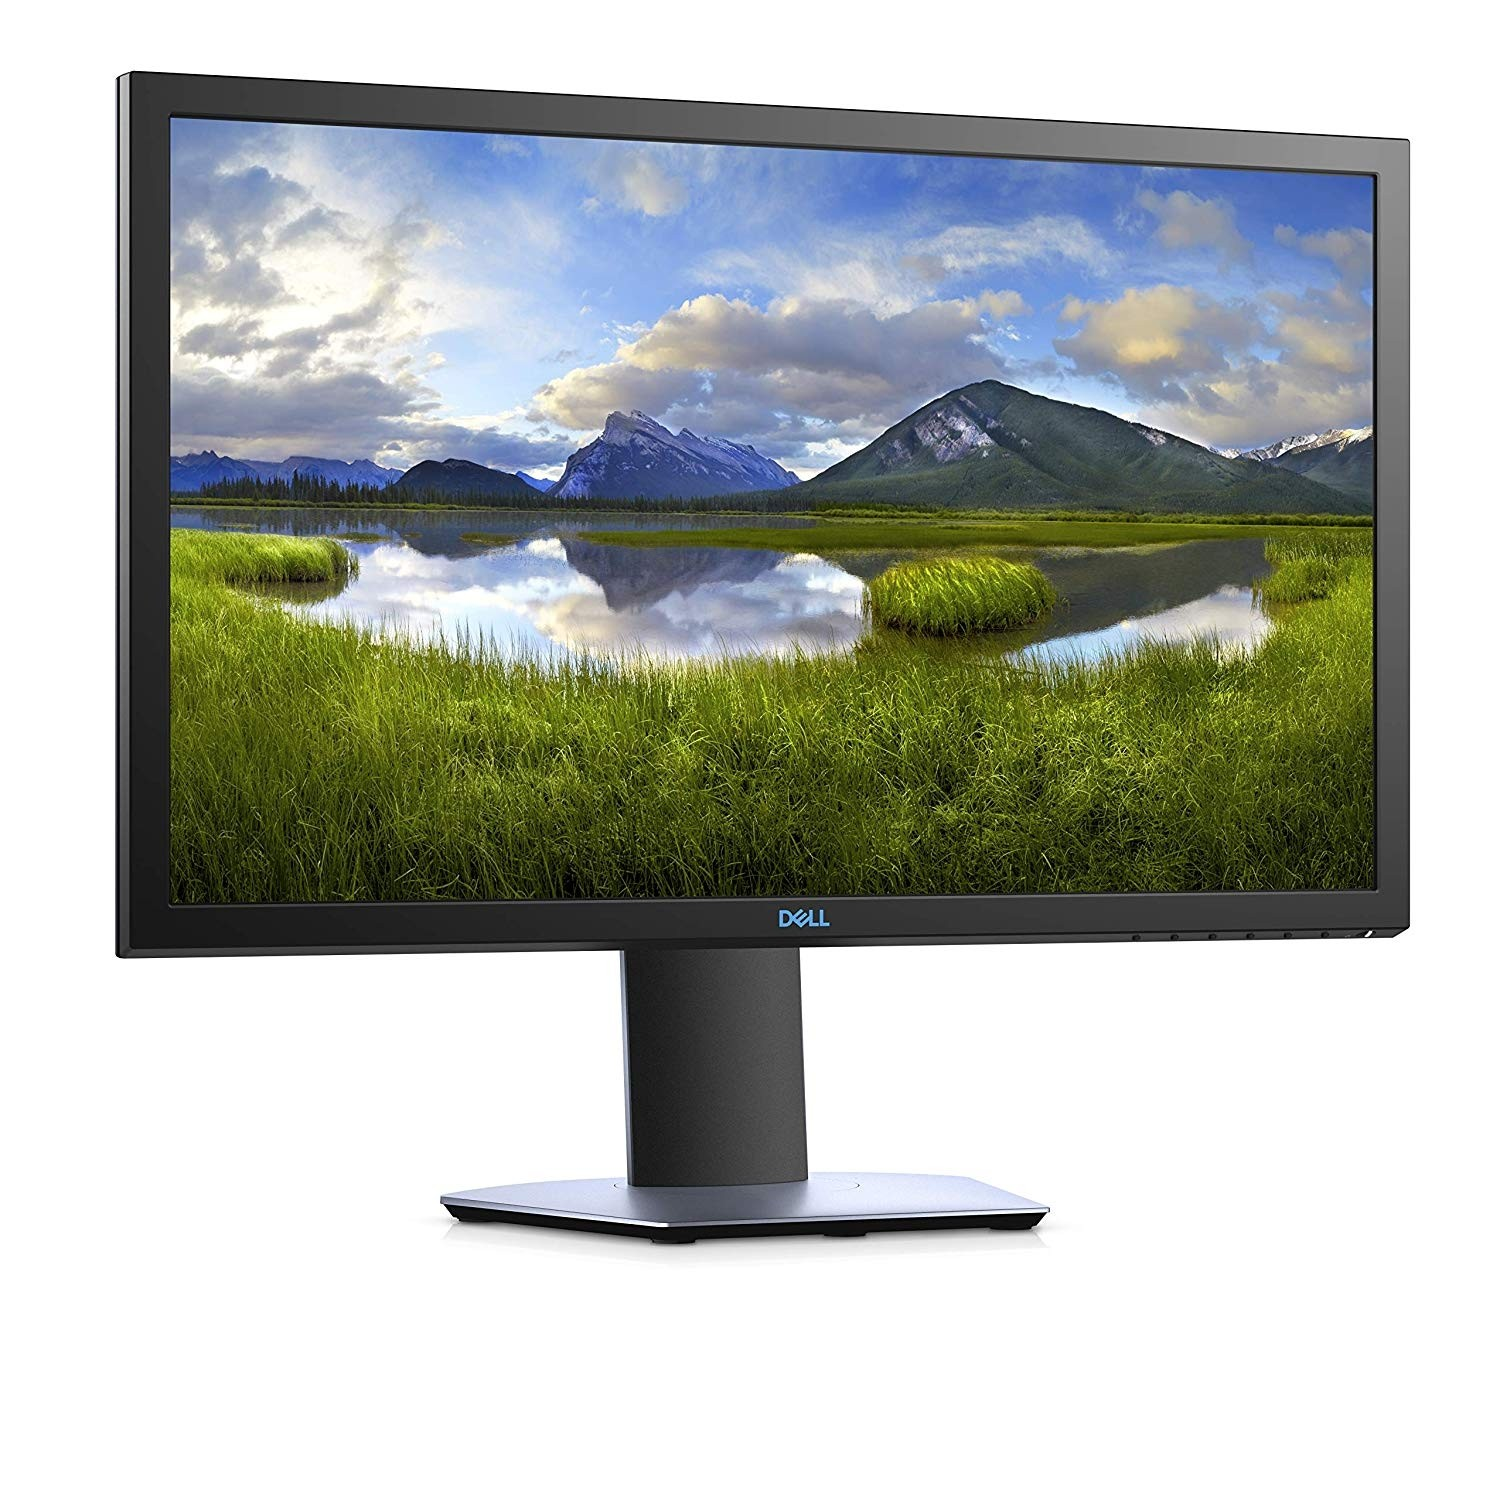 Dell S2419hgf 24 Inch Gaming Monitor 1ms Response Time 144hz Amd Freesync 2x Hdmi Displayport 1 2 Buy Best Price Global Shipping